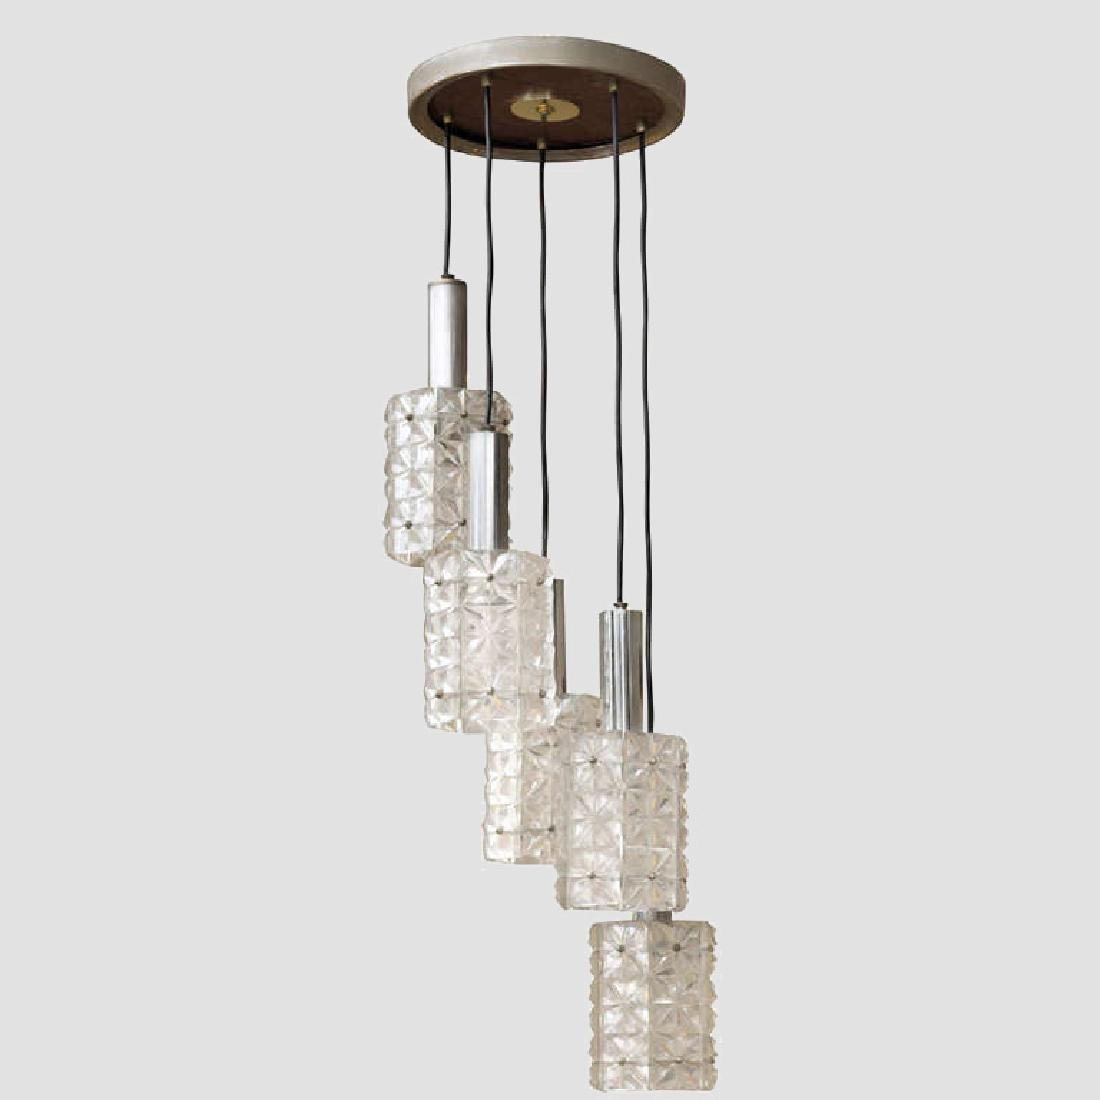 Mazzega Five Lights Pendant